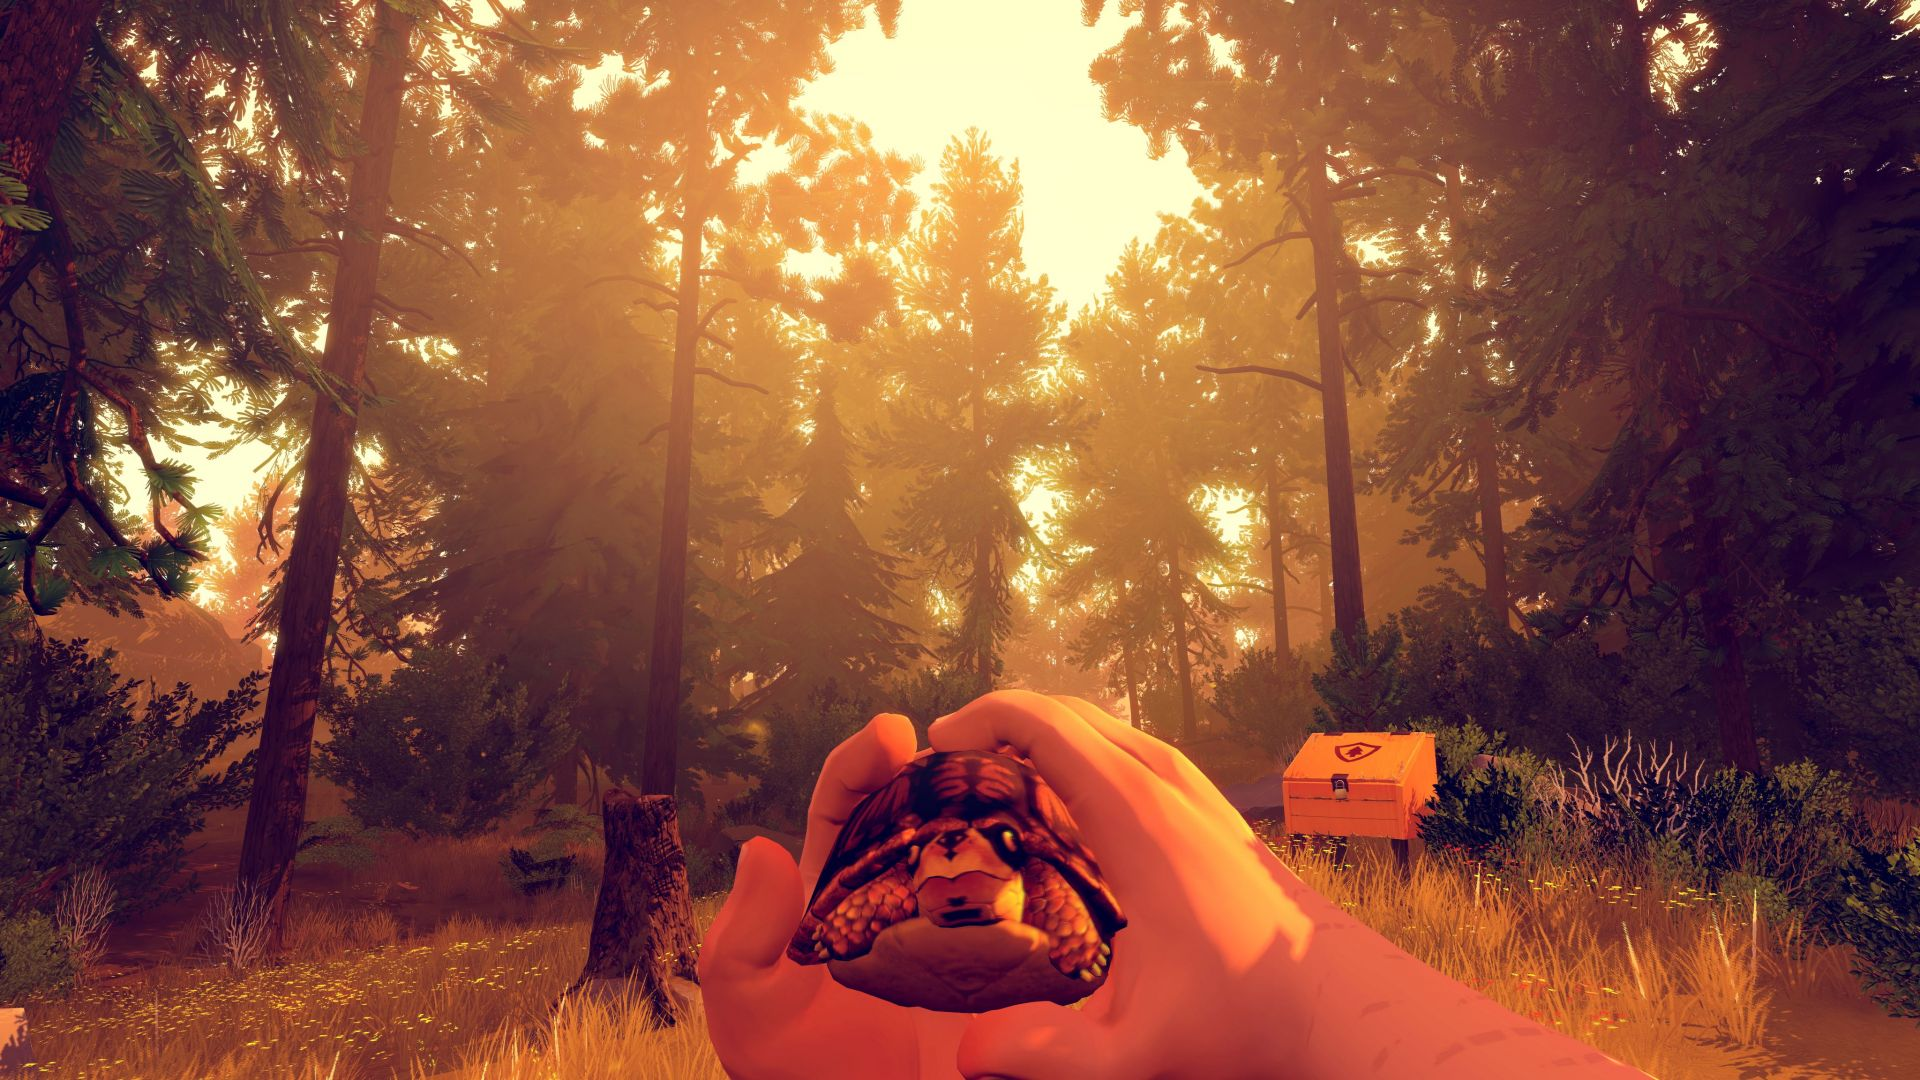 Firewatch, Best Games, game, quest, horror, PC, PS4